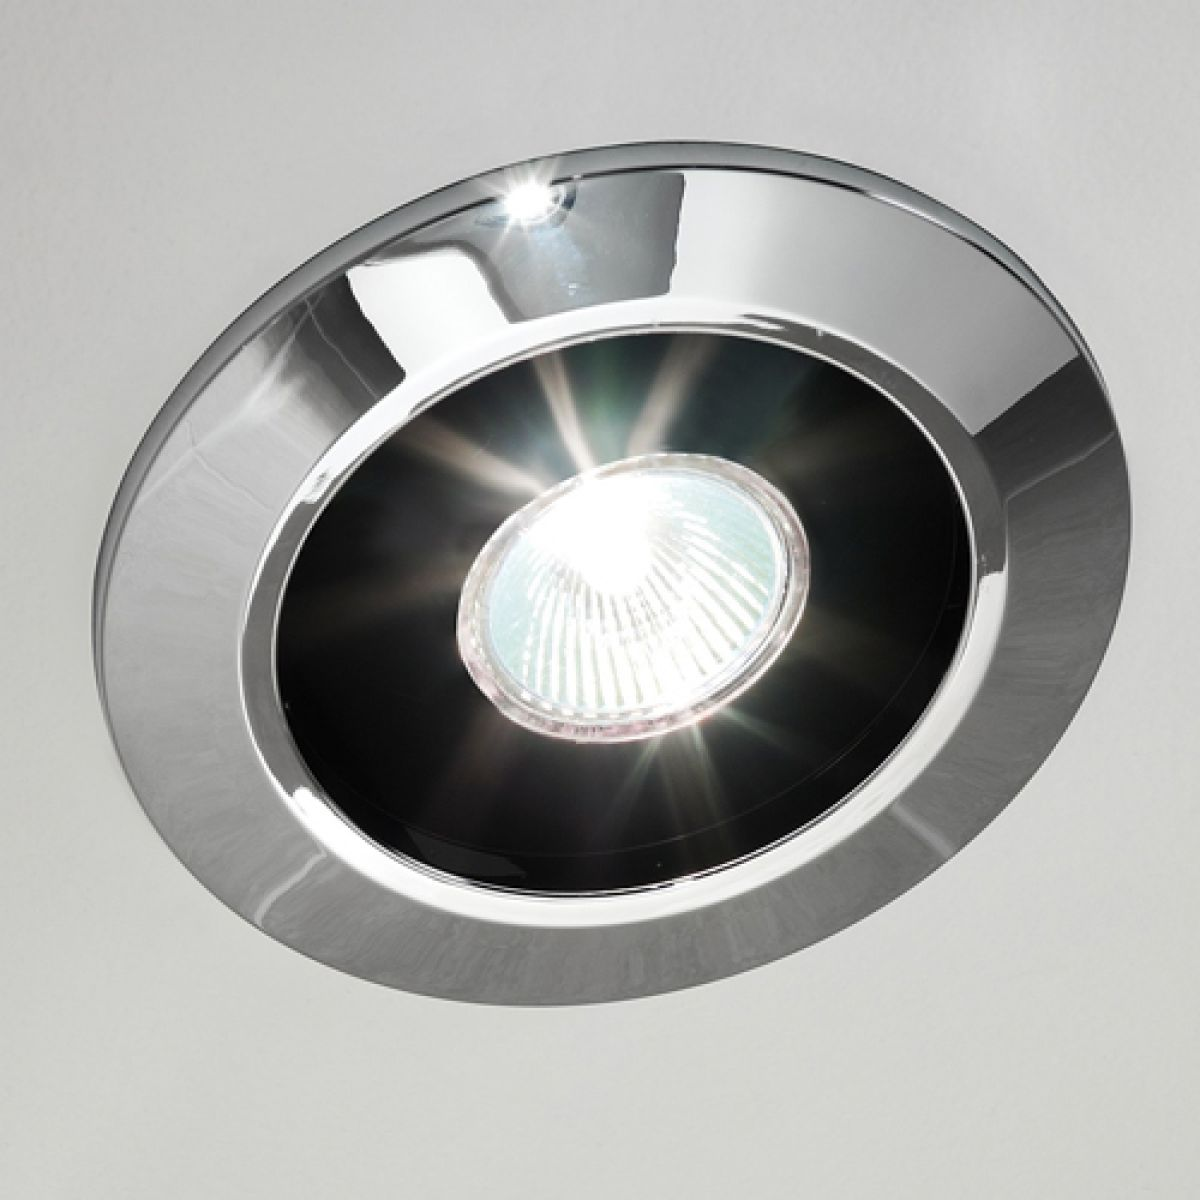 Decorate your bathroom with Extractor fan ceiling